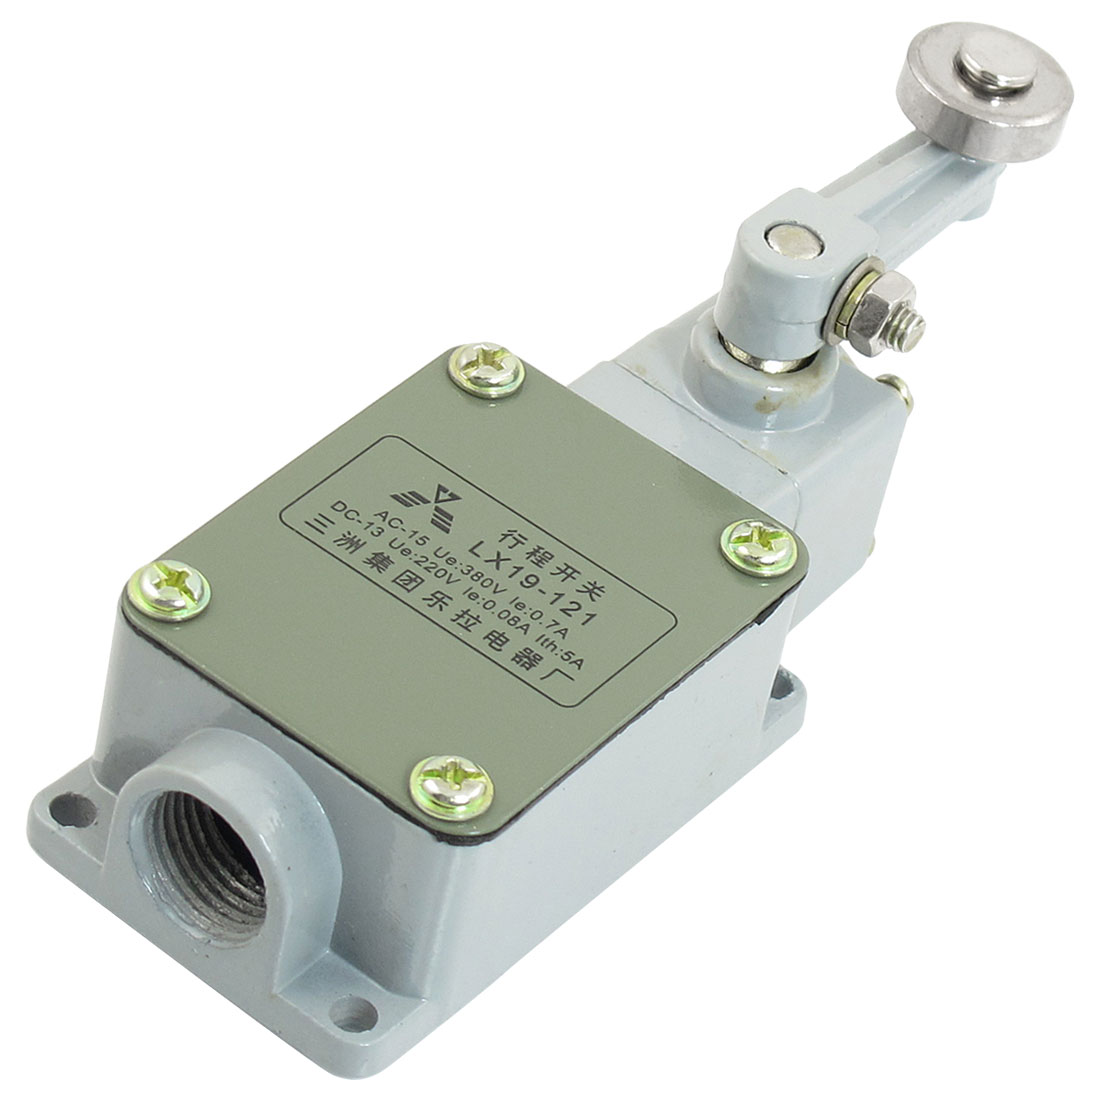 0.08A 220VDC 0.7A 380VAC 1NO 1NC Momentary Rotary Roller Lever Limit Switch LX19-121